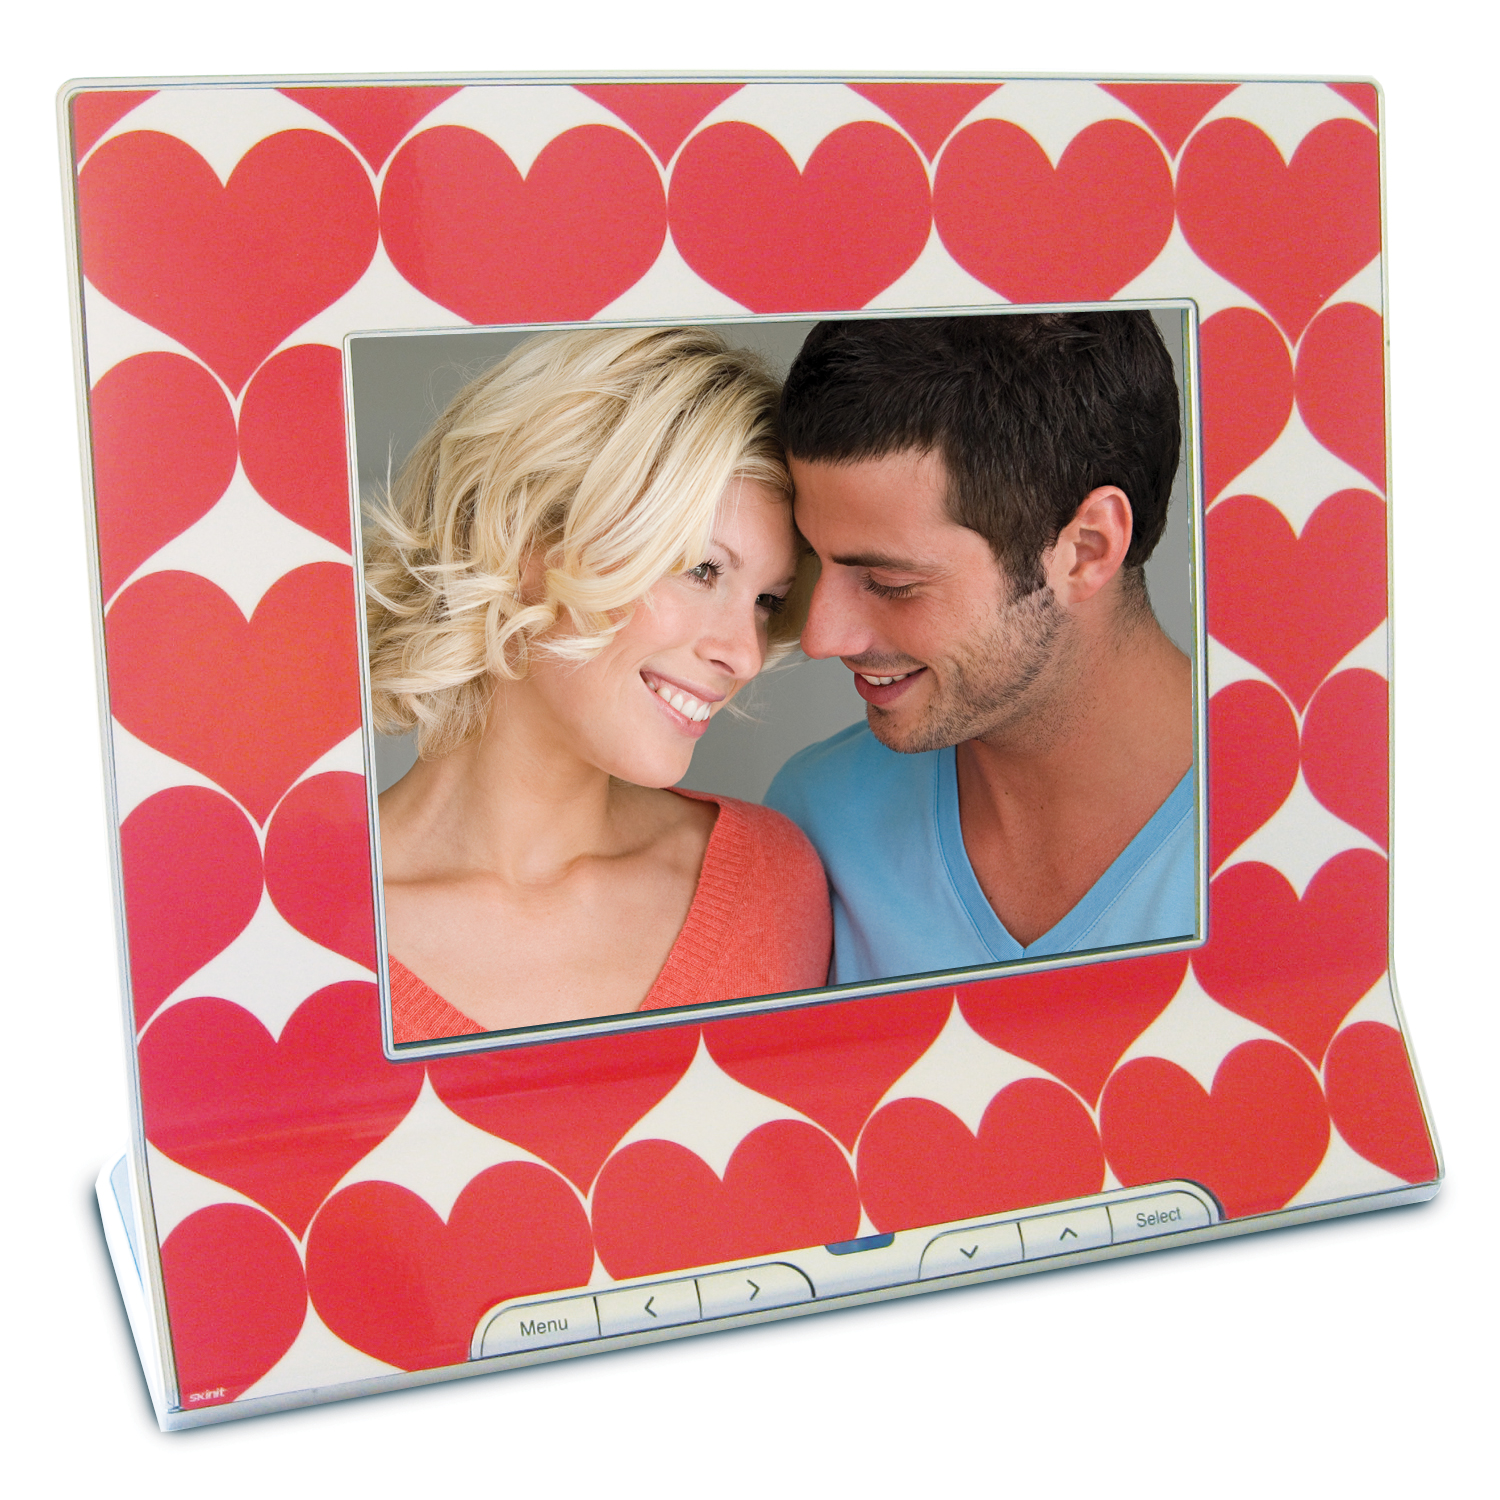 ceiva digital photo frames are the perfect gift for valentine 39 s day. Black Bedroom Furniture Sets. Home Design Ideas